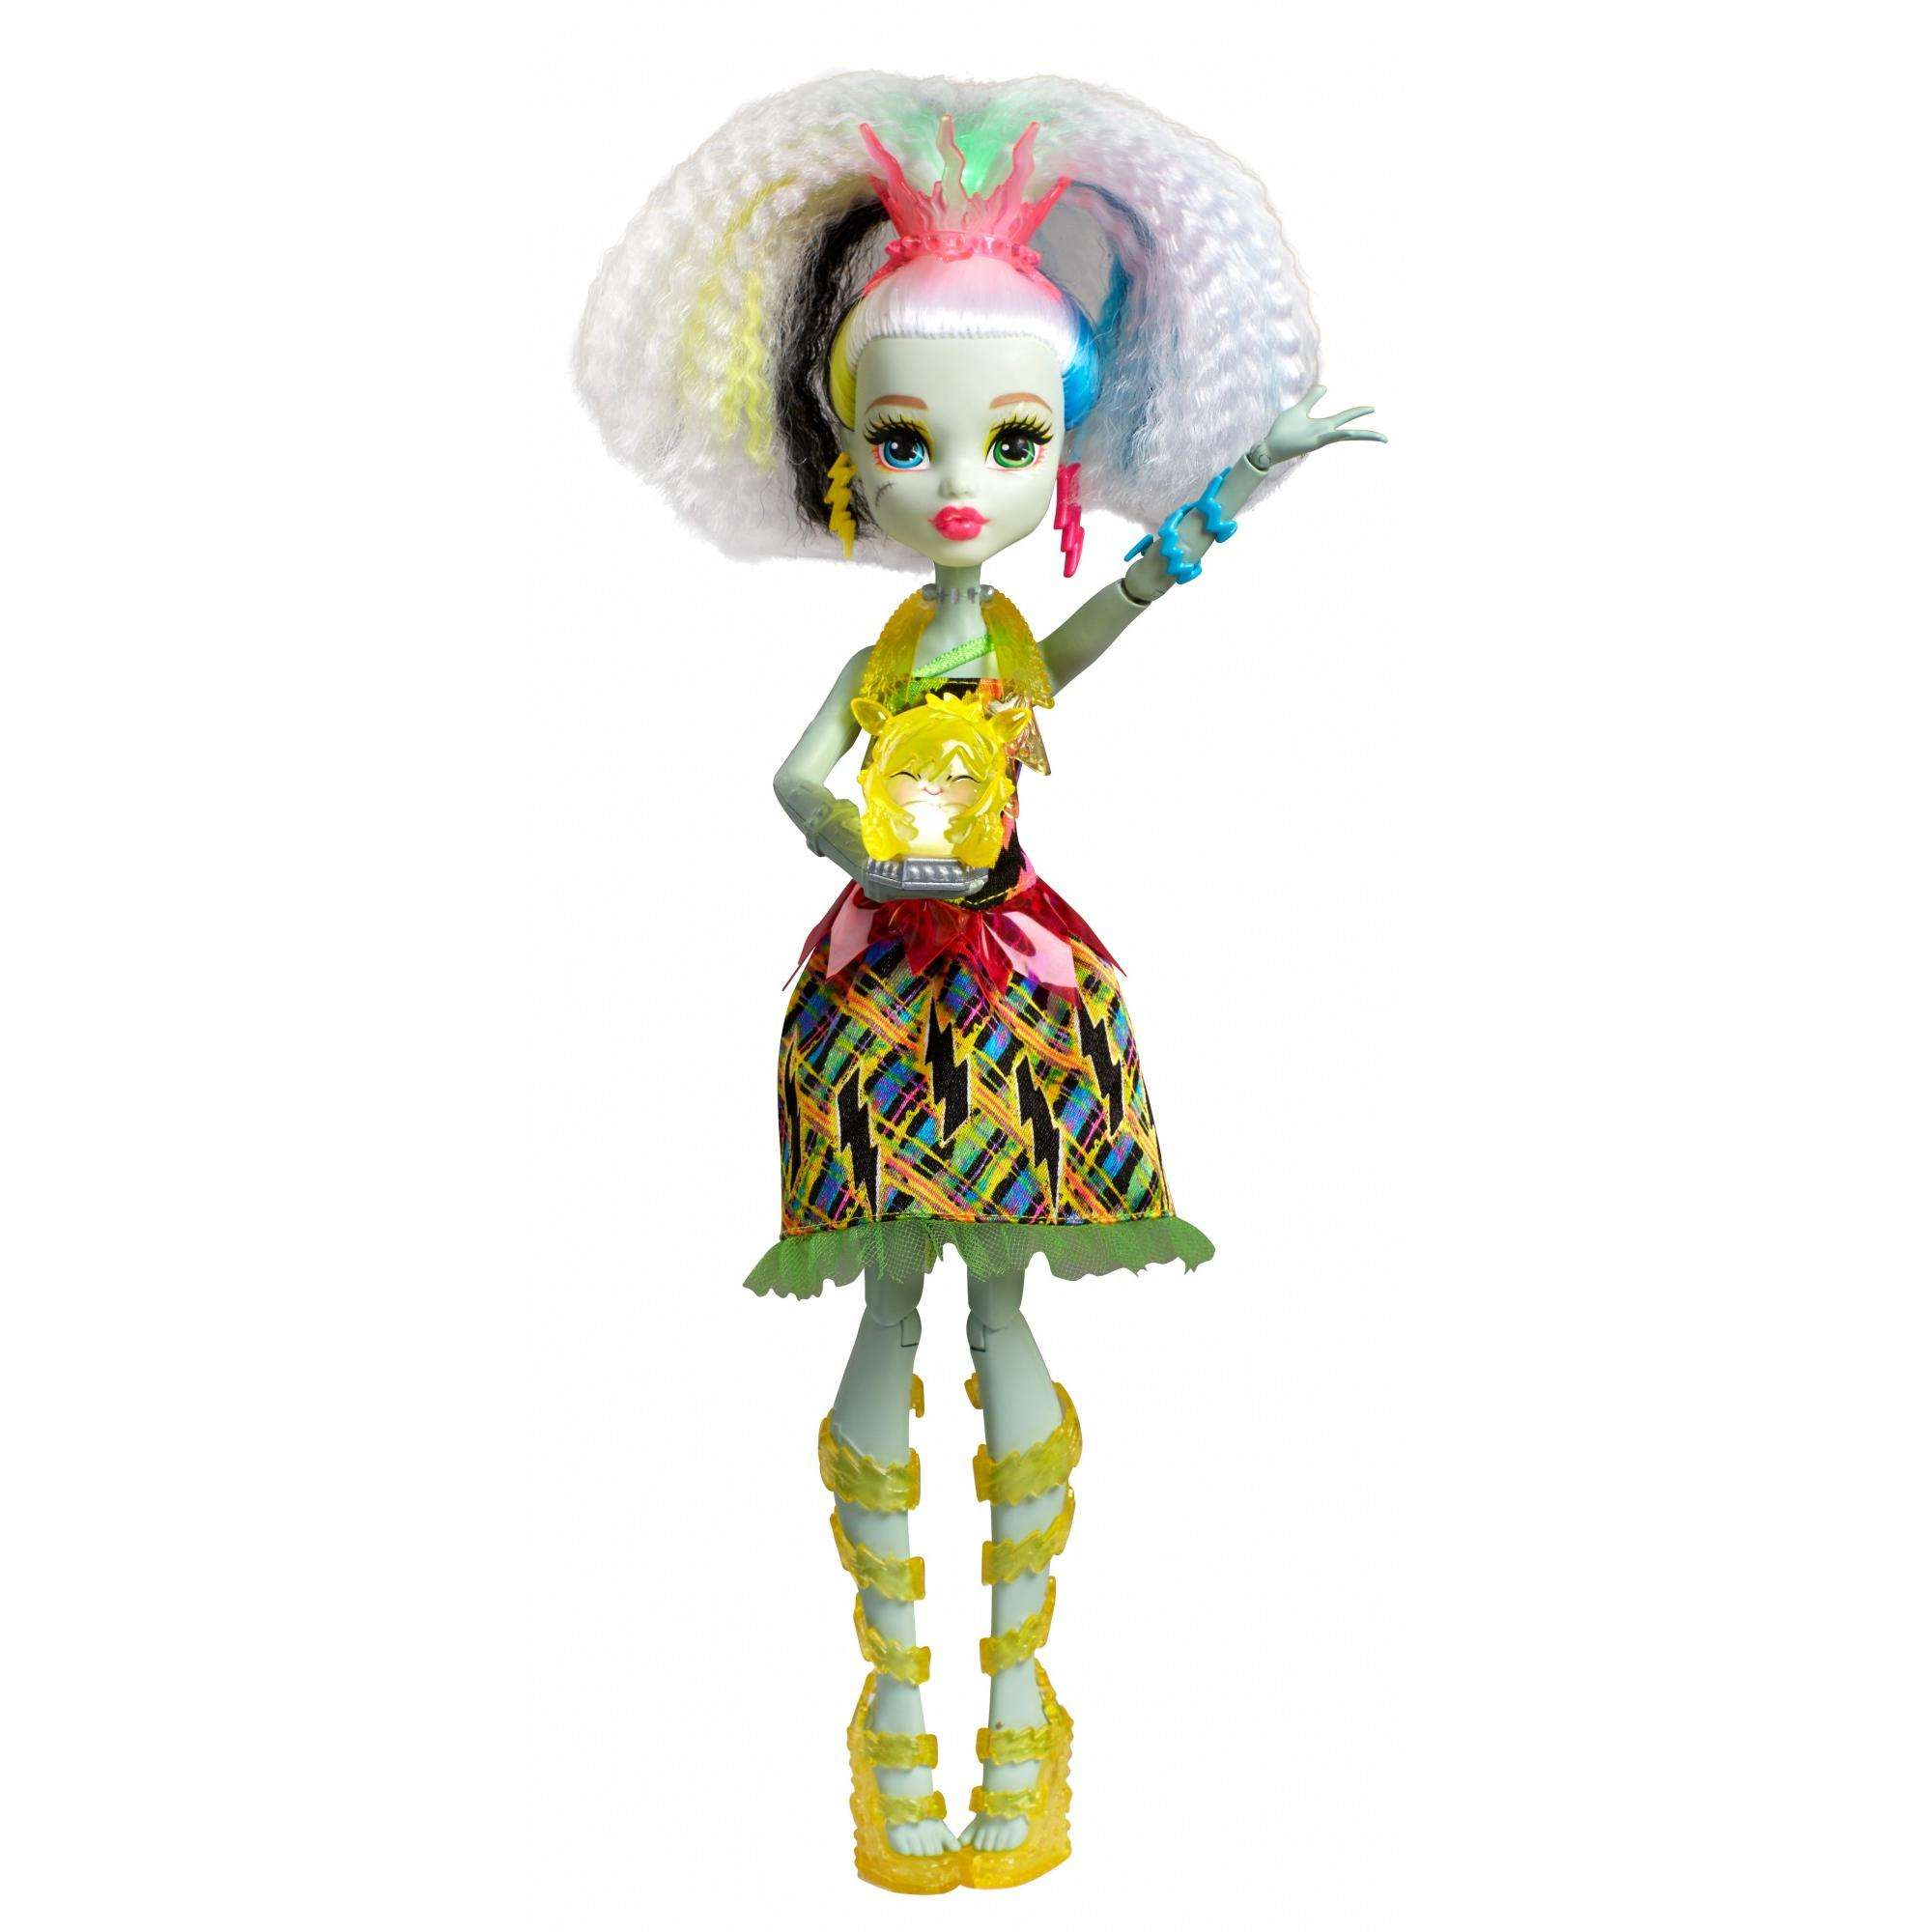 Monster High Electrified High Voltage Frankie Stein Doll by Monster High